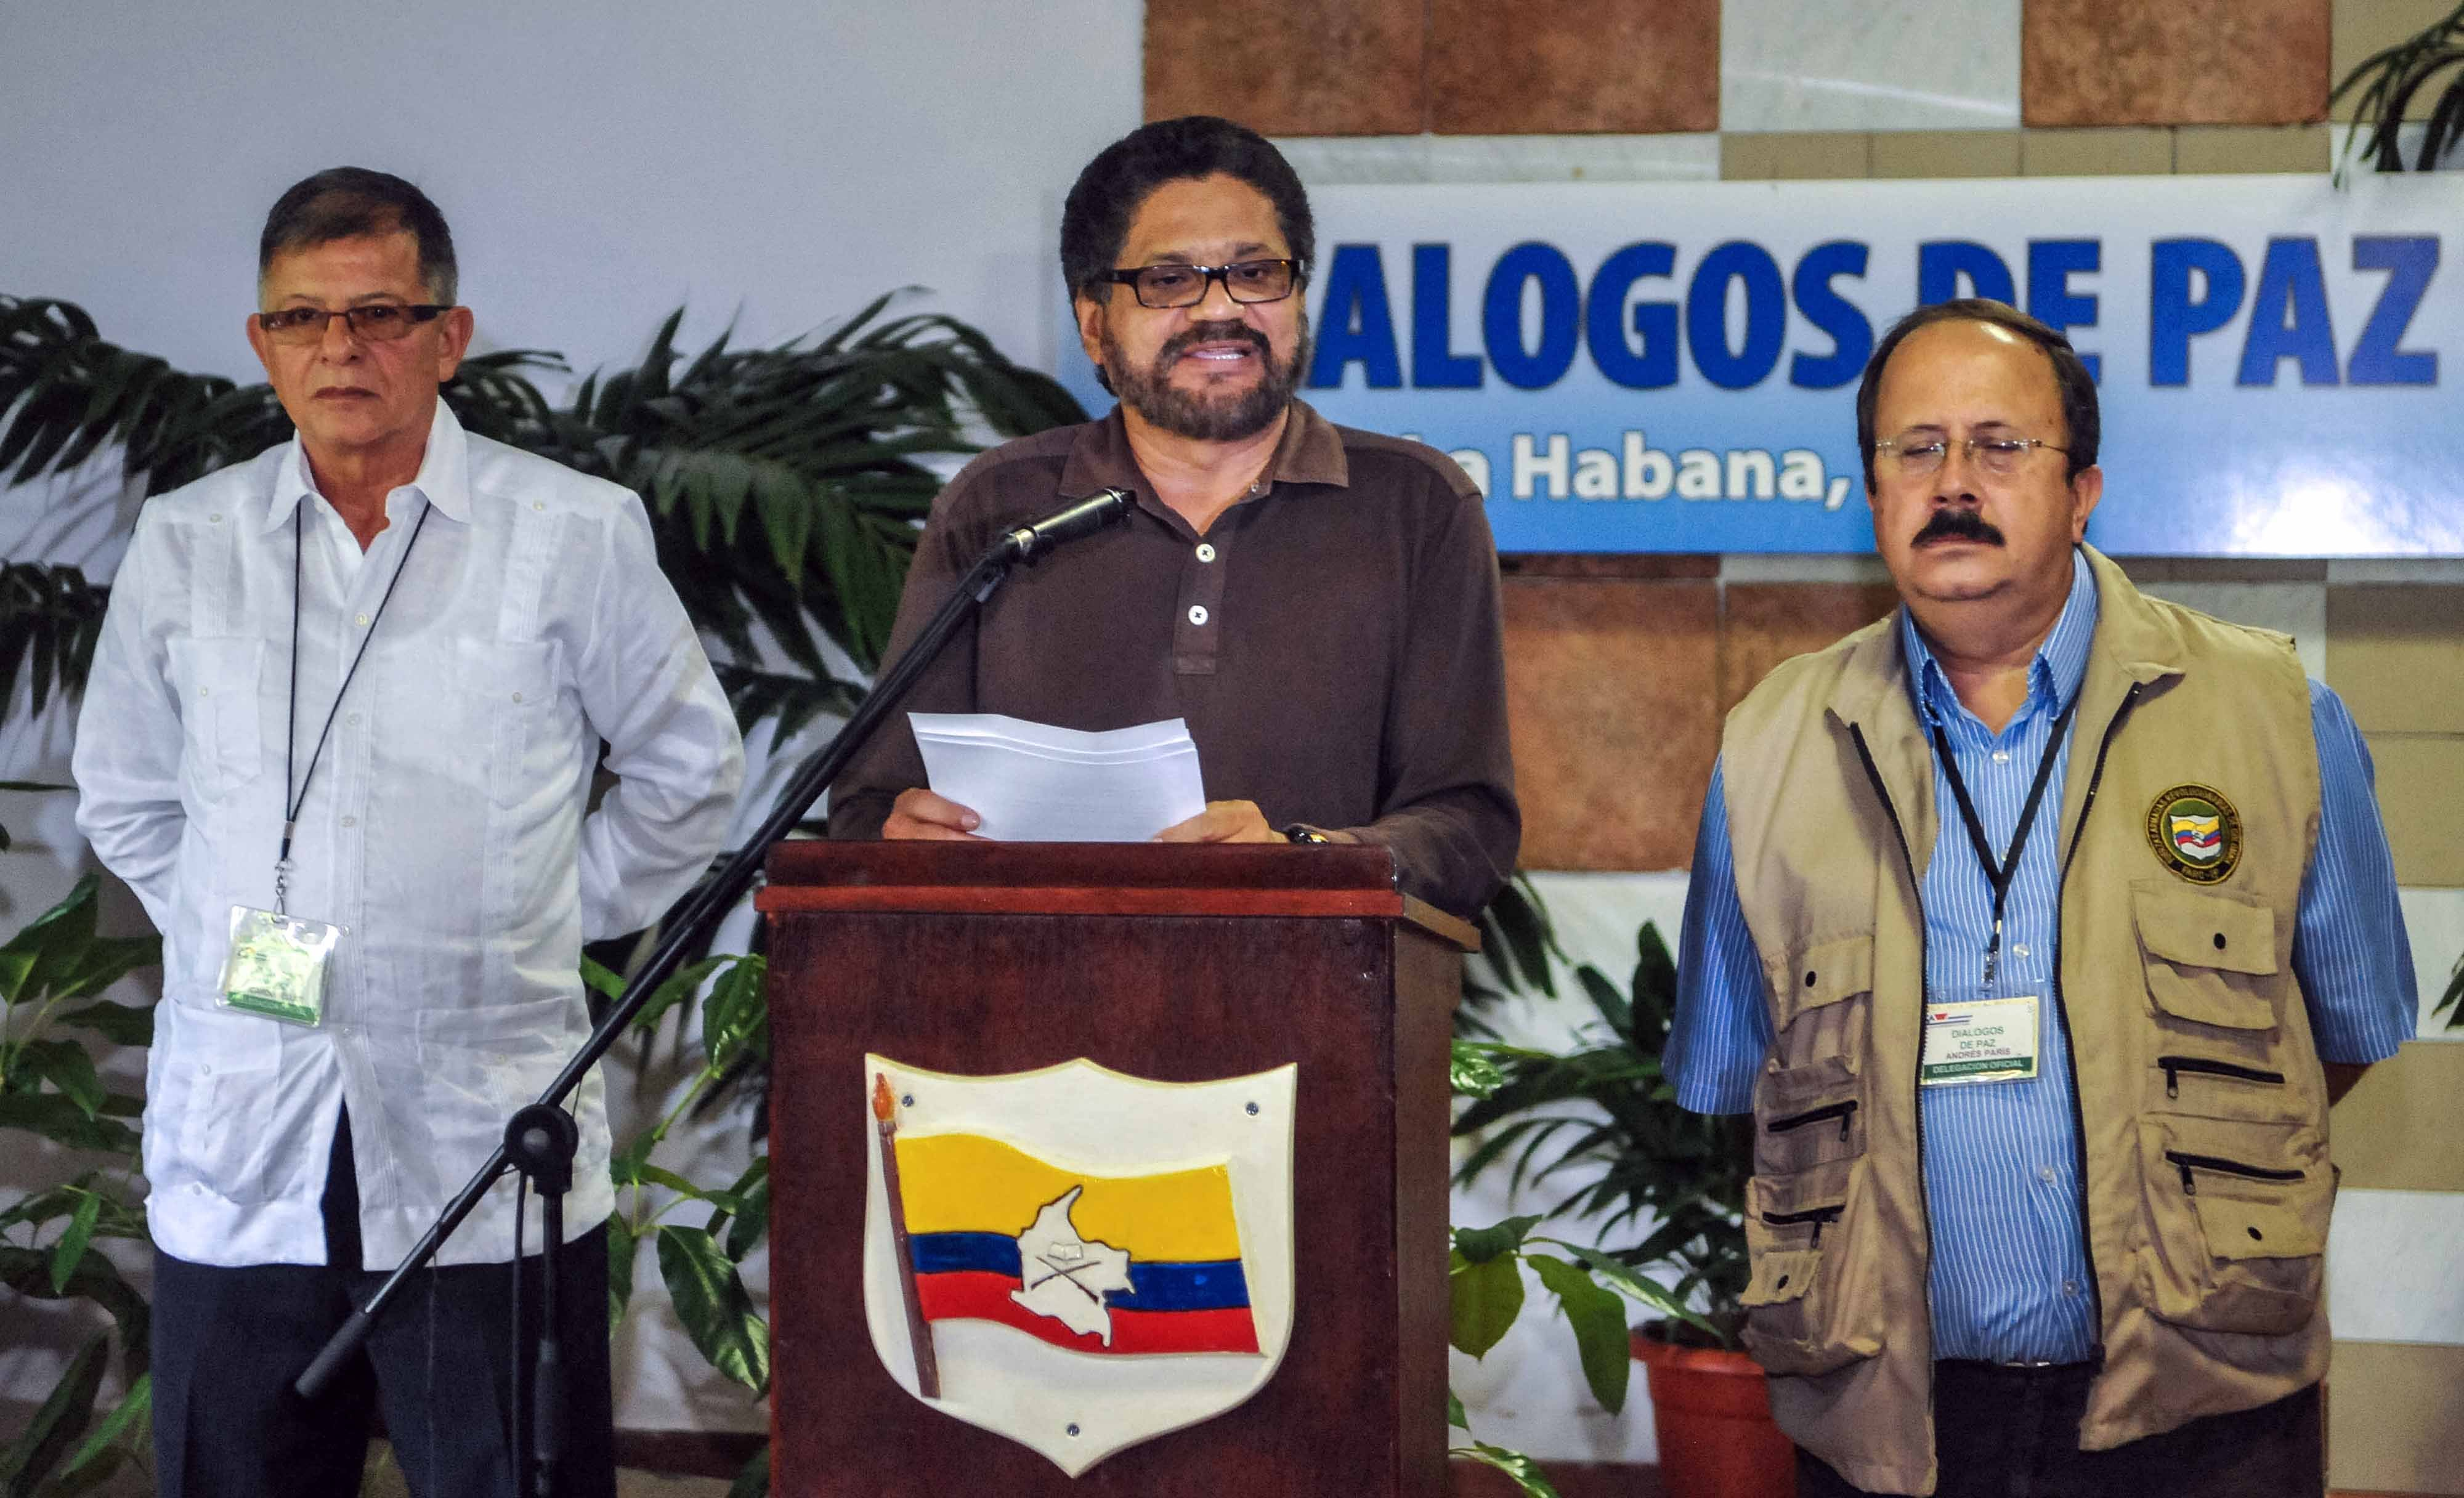 Commander Ivan Marquez (C), head of the Revolutionary Armed Forces of Colombia (FARC-EP) leftist guerrillas delegation for the peace talks with the Colombian government, reads a document to the media next to Commander Rodrigo Granda (L), and Commander Andres Paris at the Convention Palace in Havana on October 3, 2013, at the end of a new round of meetings with the Colombian government delegation. The Colombian government resumed peace talks with leftist rebels Thursday in a renewed bid to end nearly half a century of armed conflict. Negotiations, which began in November, picked up again in the Cuban capital following a two-week break.    AFP PHOTO/ADALBERTO ROQUE